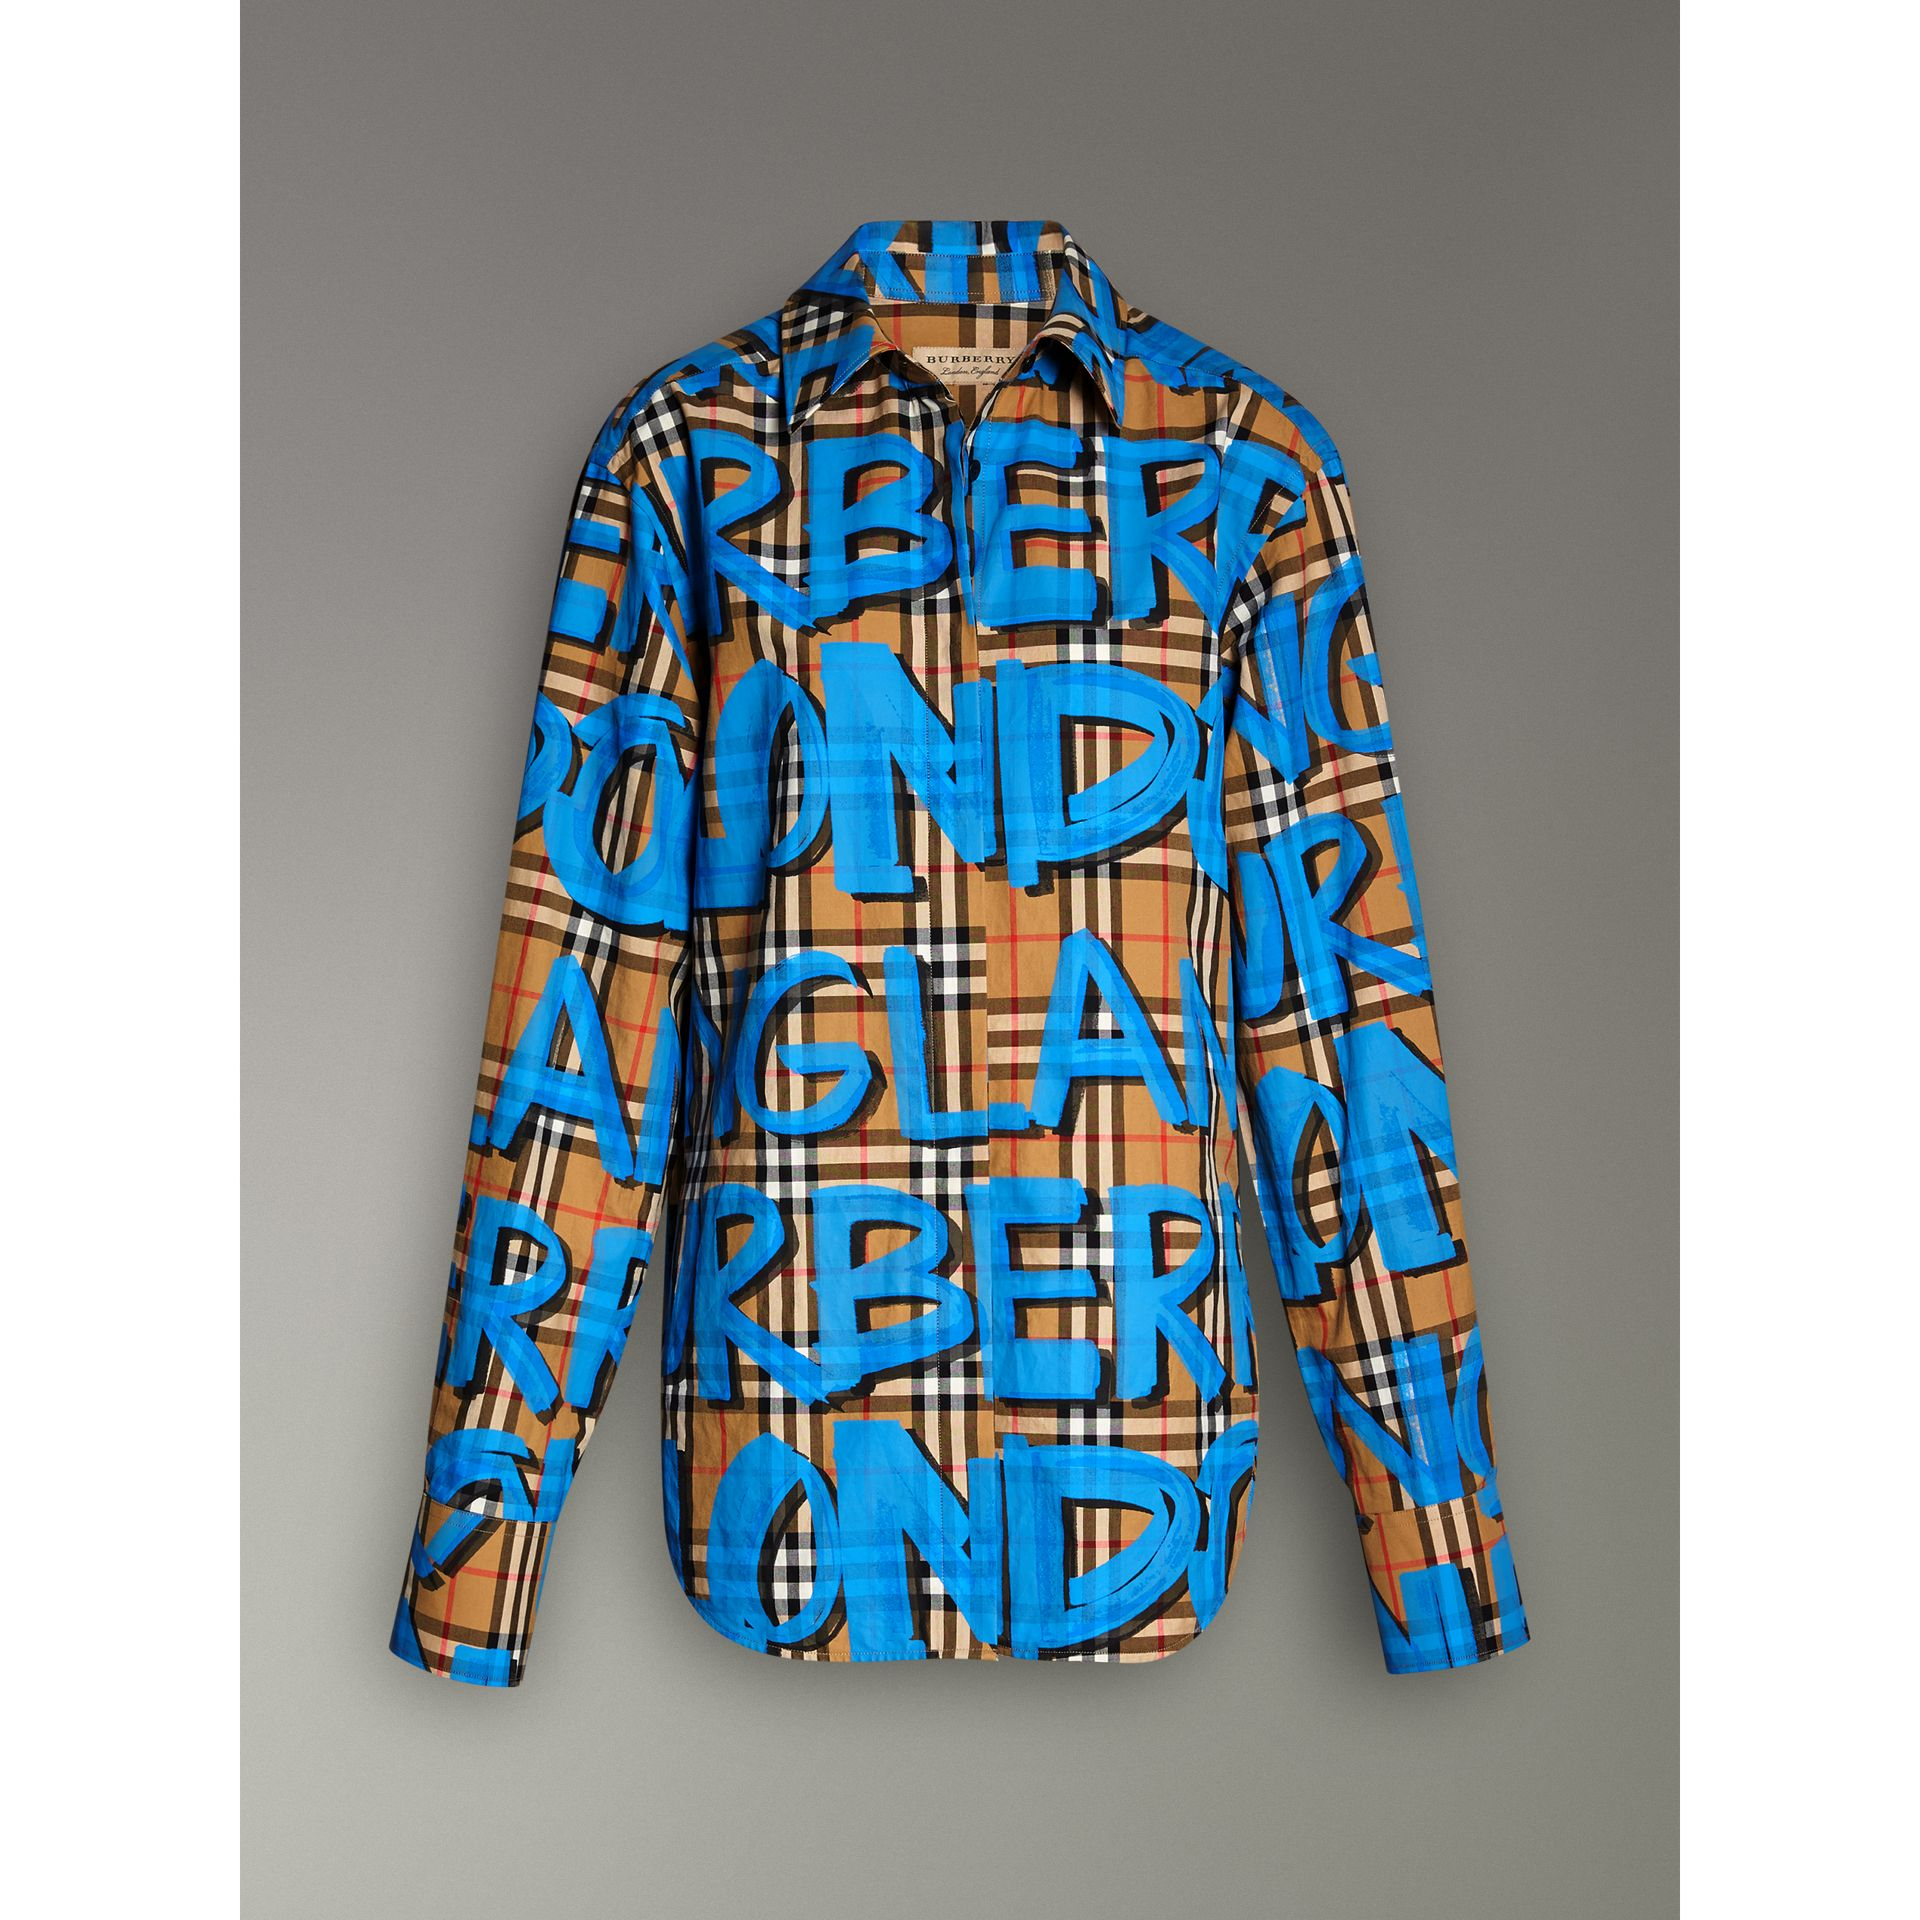 Graffiti Print Vintage Check Cotton Shirt in Bright Blue - Women | Burberry - gallery image 3